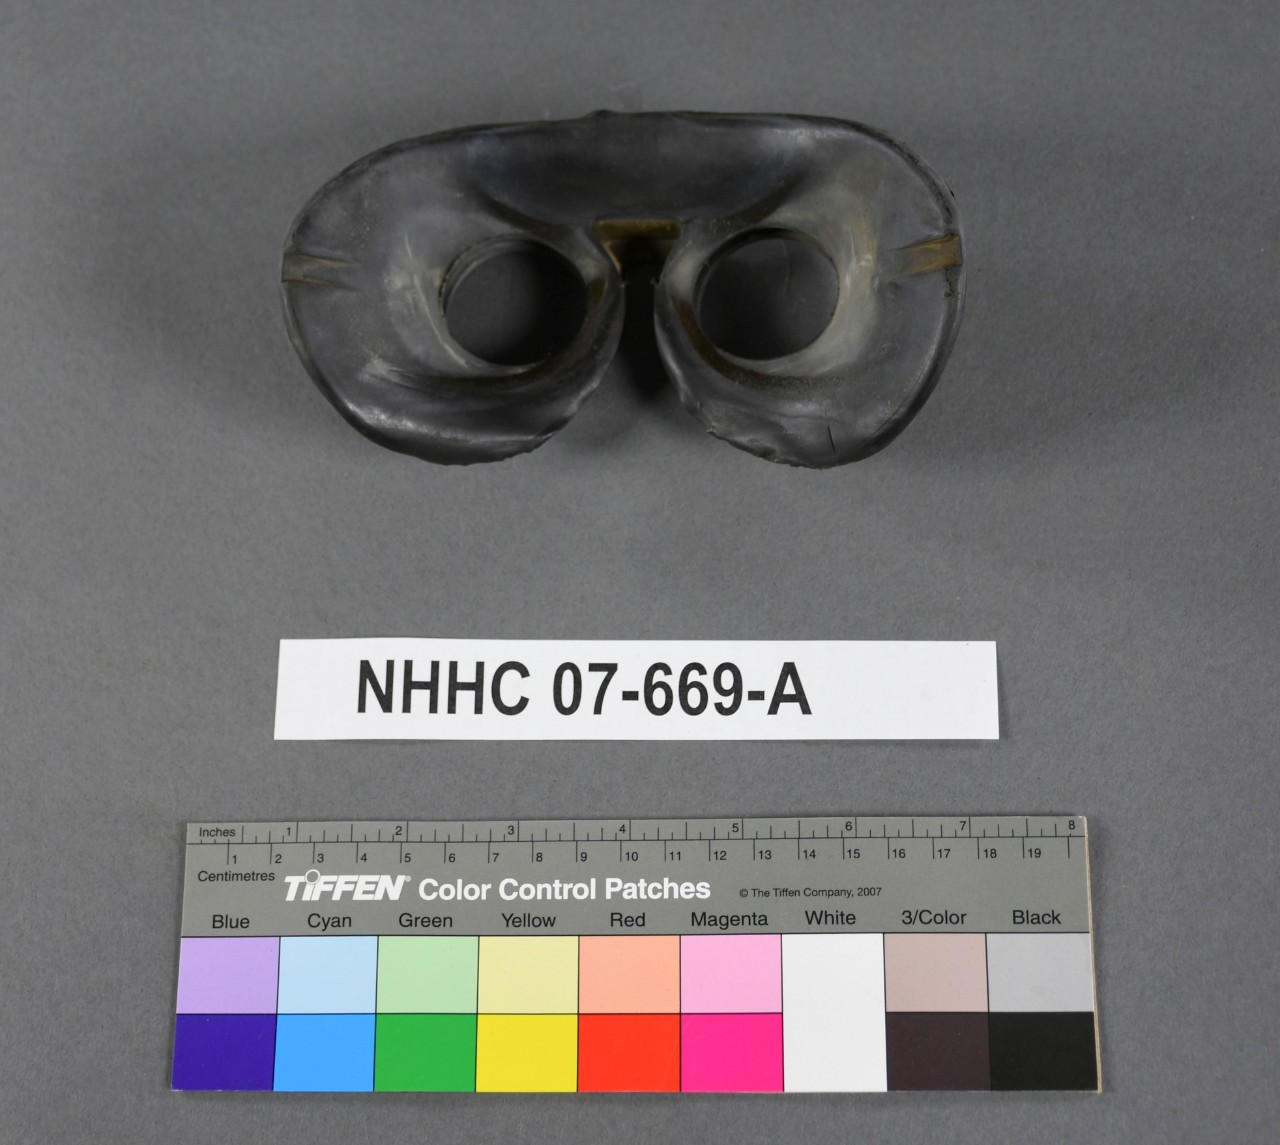 <p>Rubber eyepieces for Japanese Binoculars captured at leyte gulf</p>